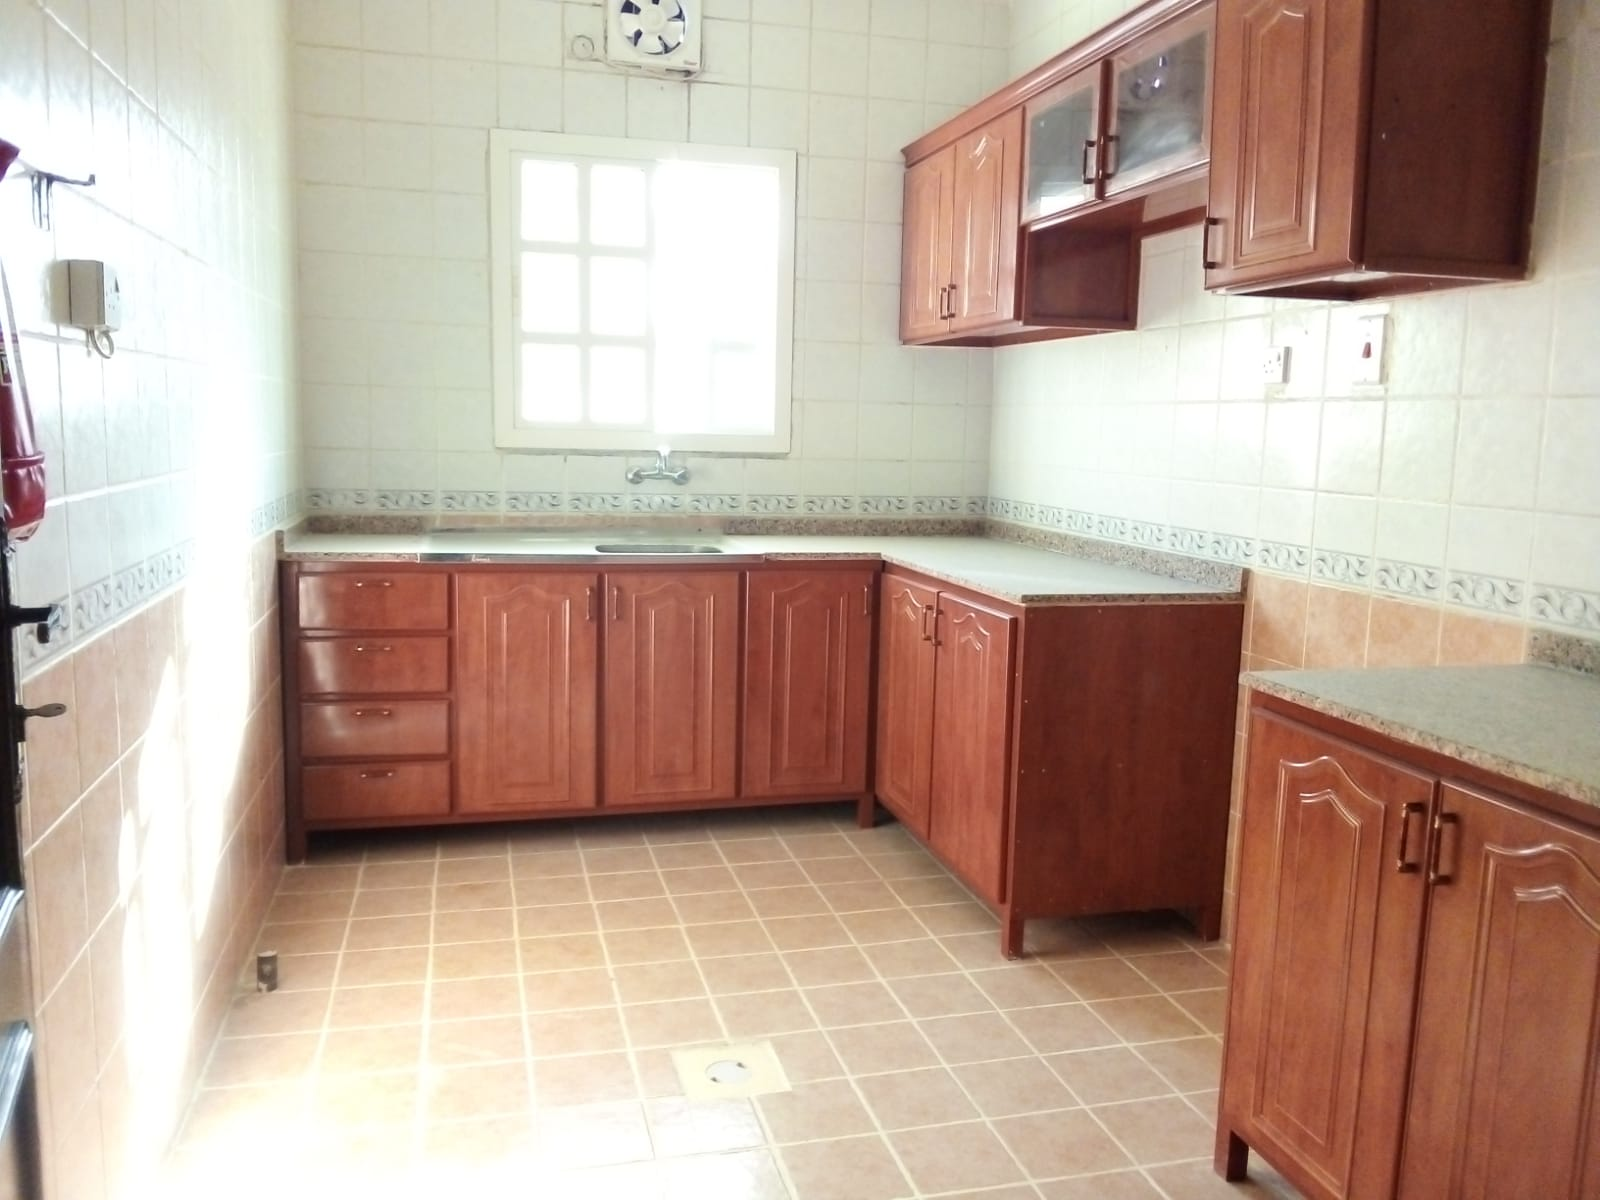 3982 Unfurnished 2 BHK Apartment for Rent